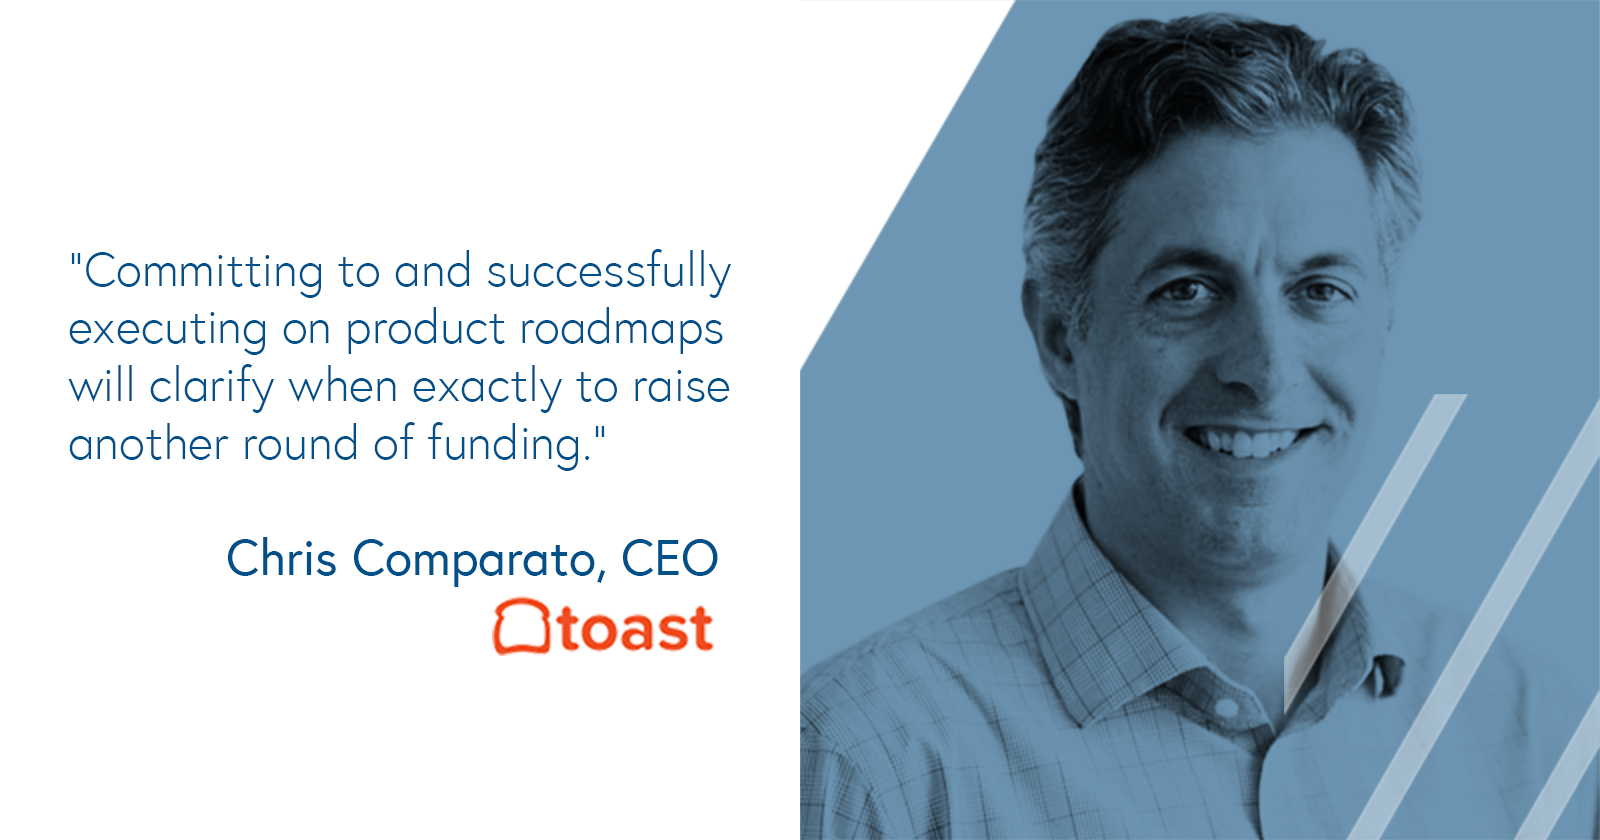 Chris Comparato, CEO of Toast on executing to a product roadmap and gearing up for the next round of financing